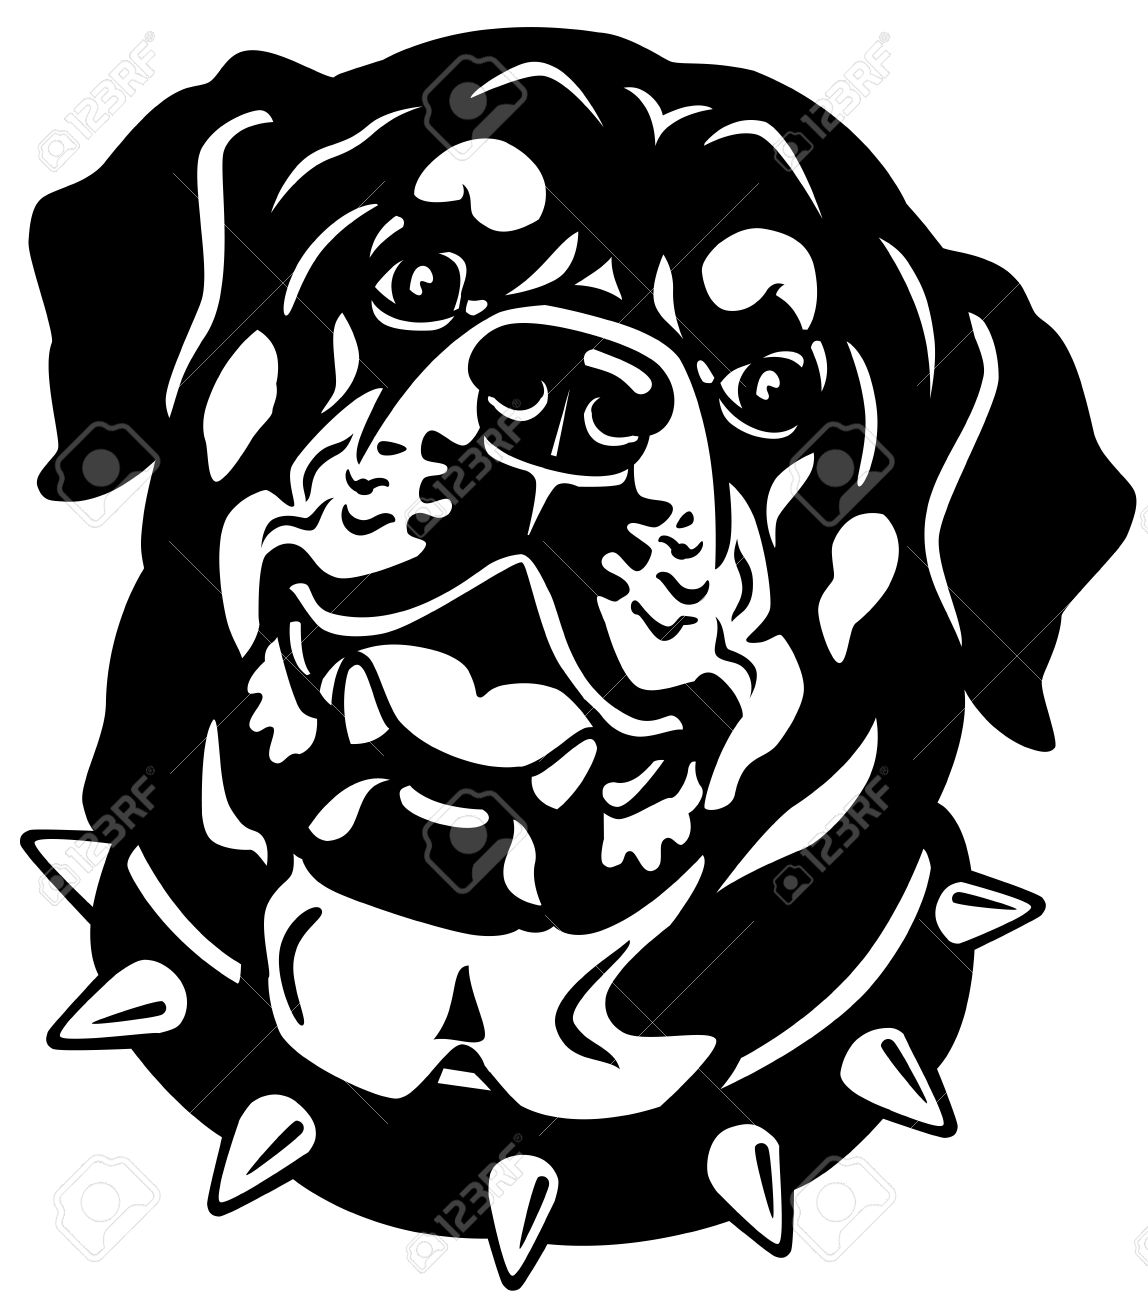 Rottweiler clipart #12, Download drawings